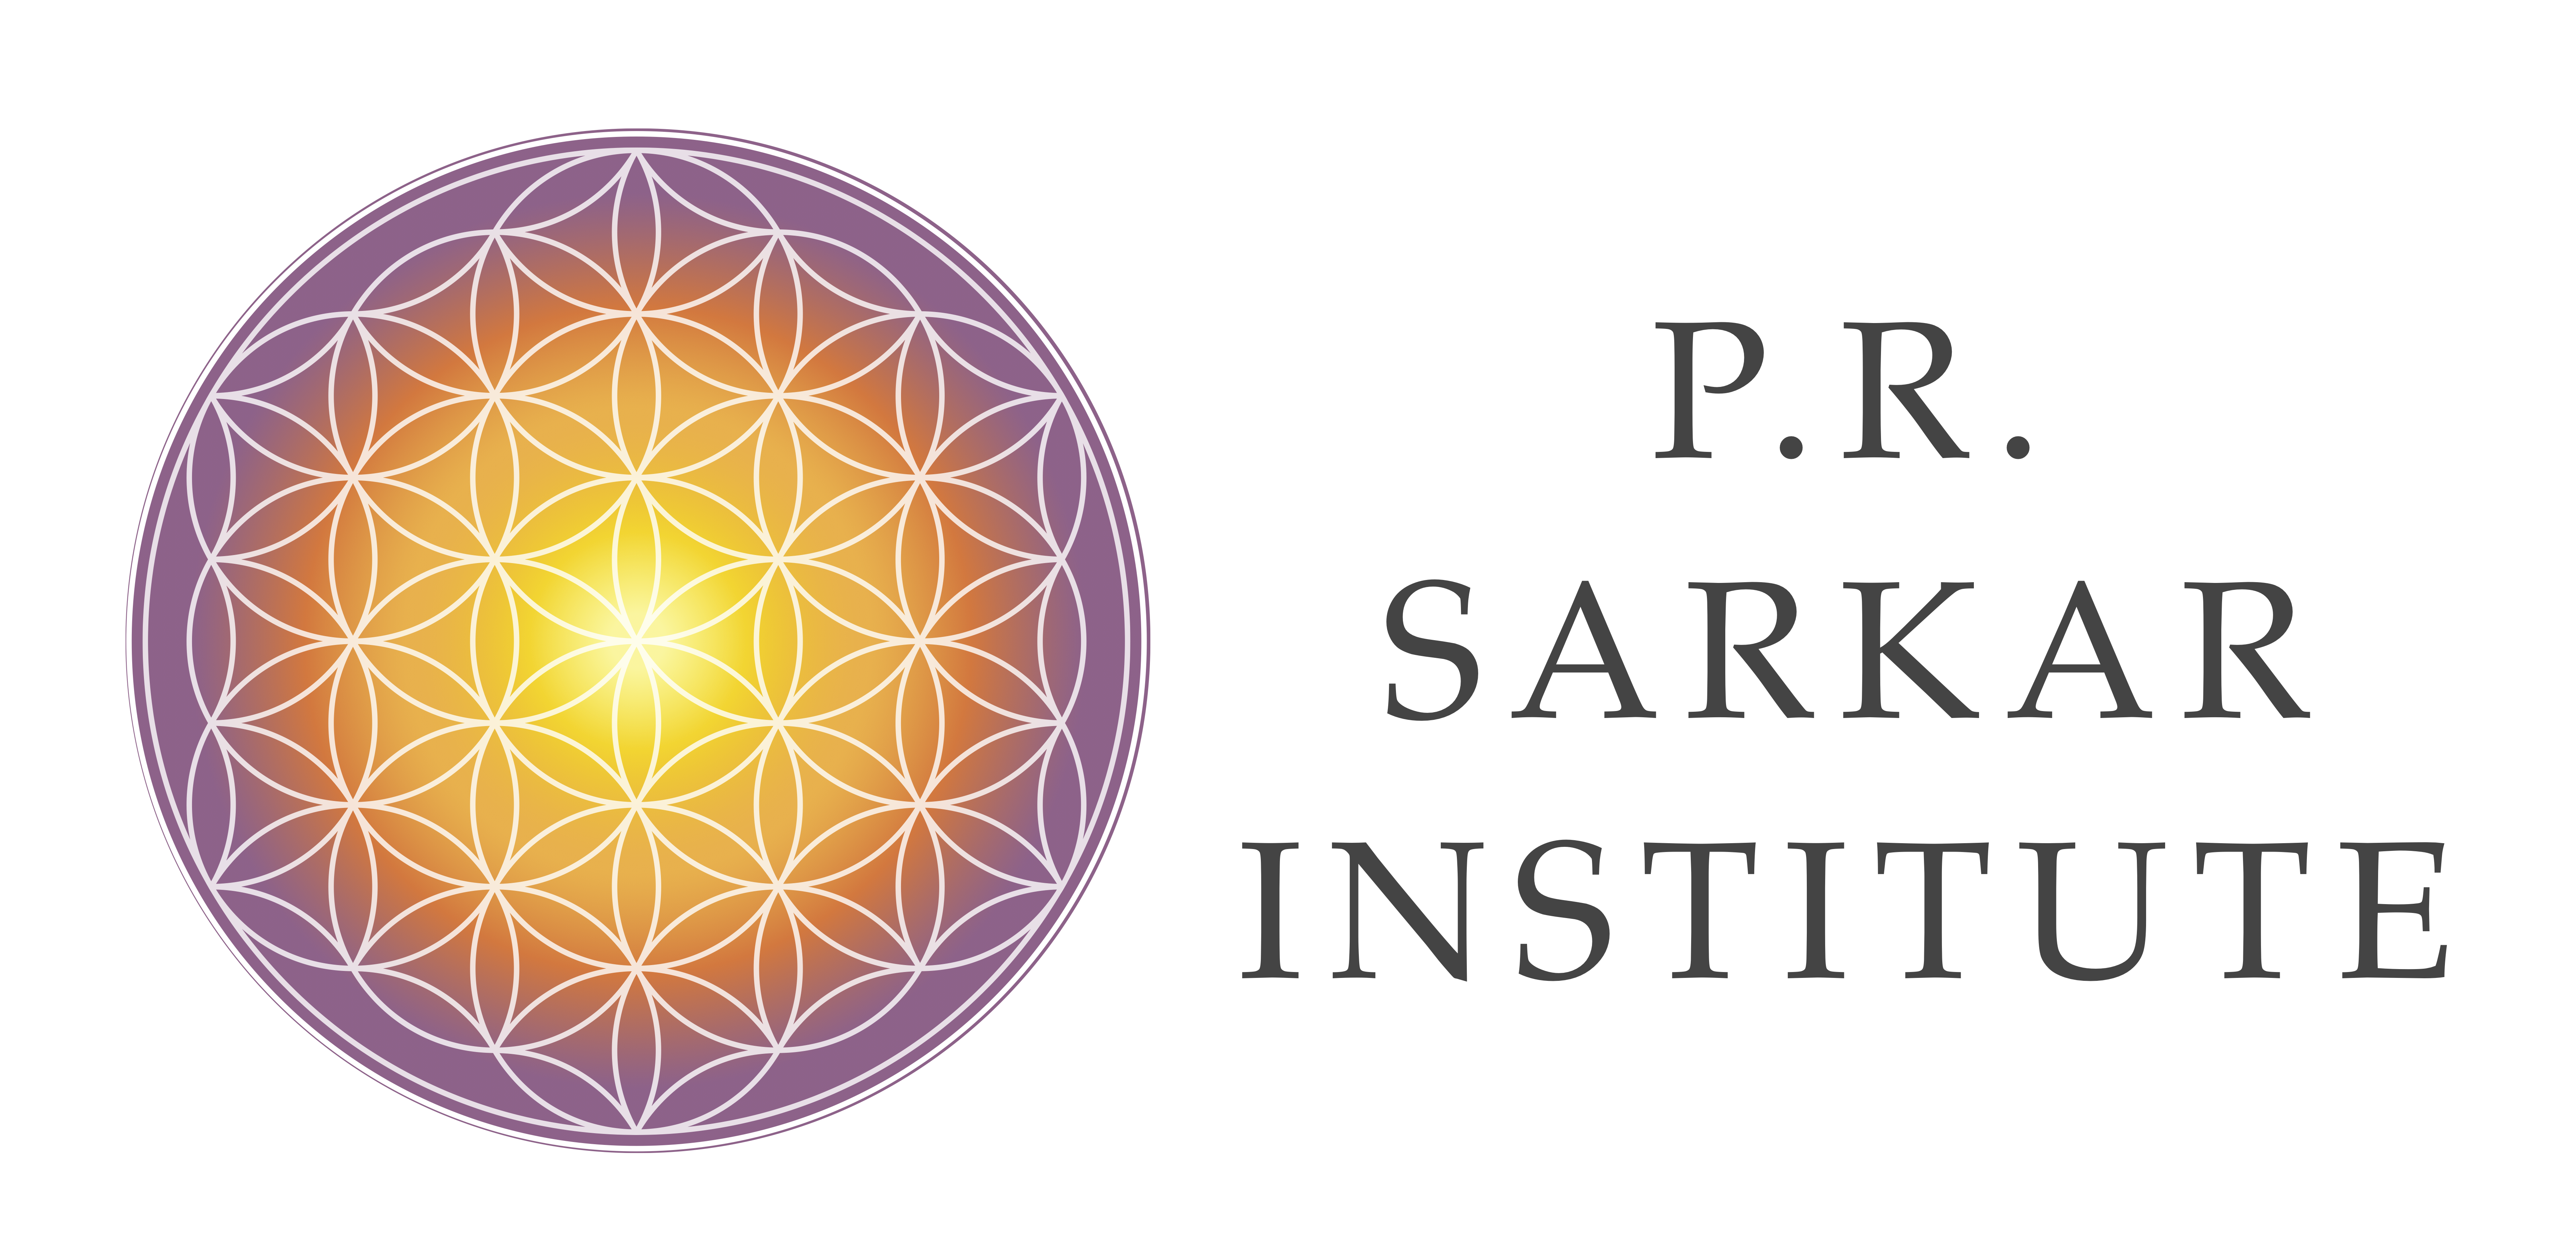 P.R. Sarkar Institute Logo